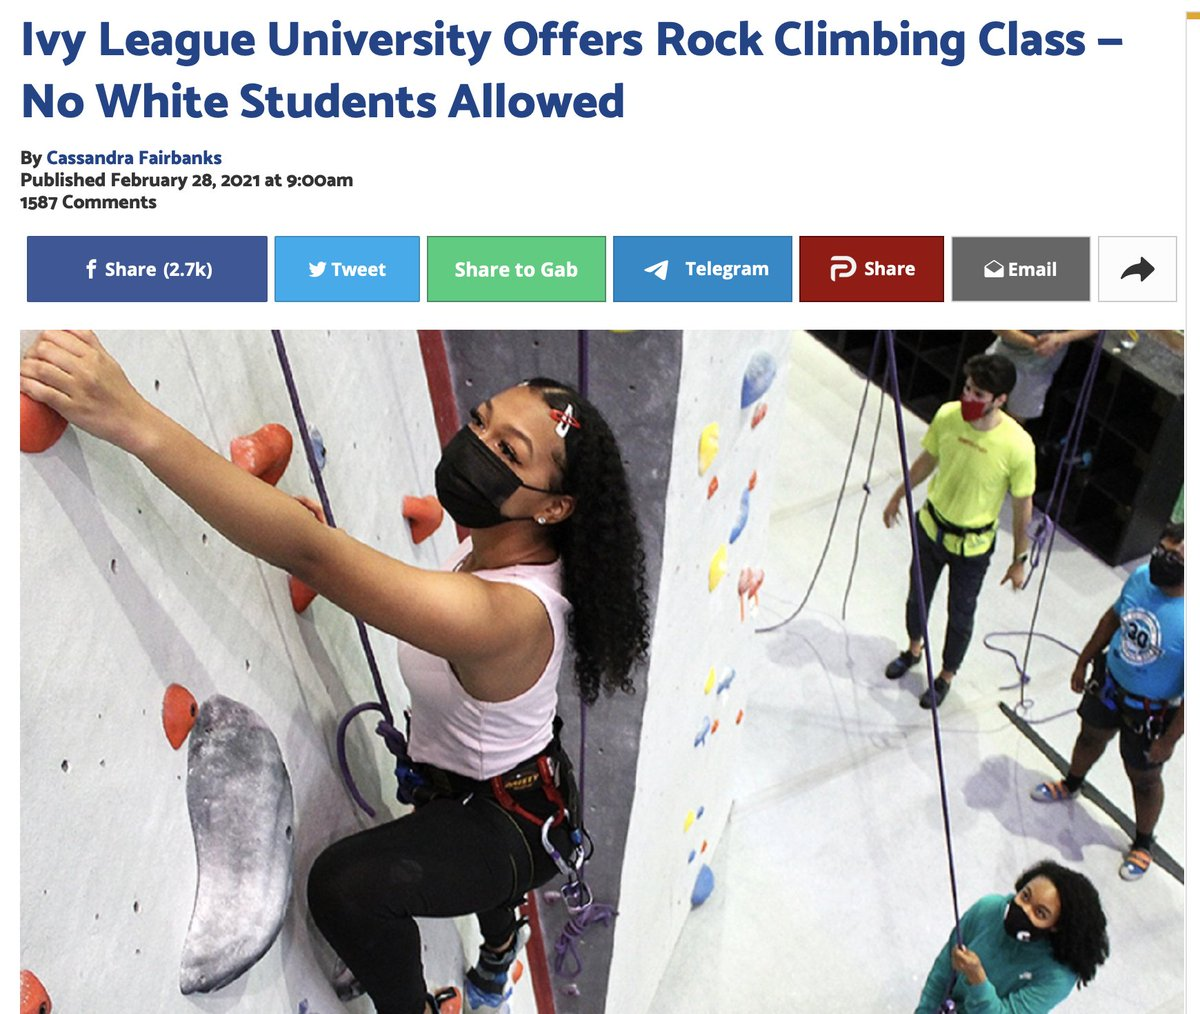 Ivy League schools finally catching on. WHITES should be banned from most classes because the space becomes OPPRESSIVE and UNSAFE when they are allowed to participate. #BLM #Cornell #Woke #WhitePrivilege #BlackLivesMatter #BlackTwitter #freedom #Trump #biden #EDI #equity